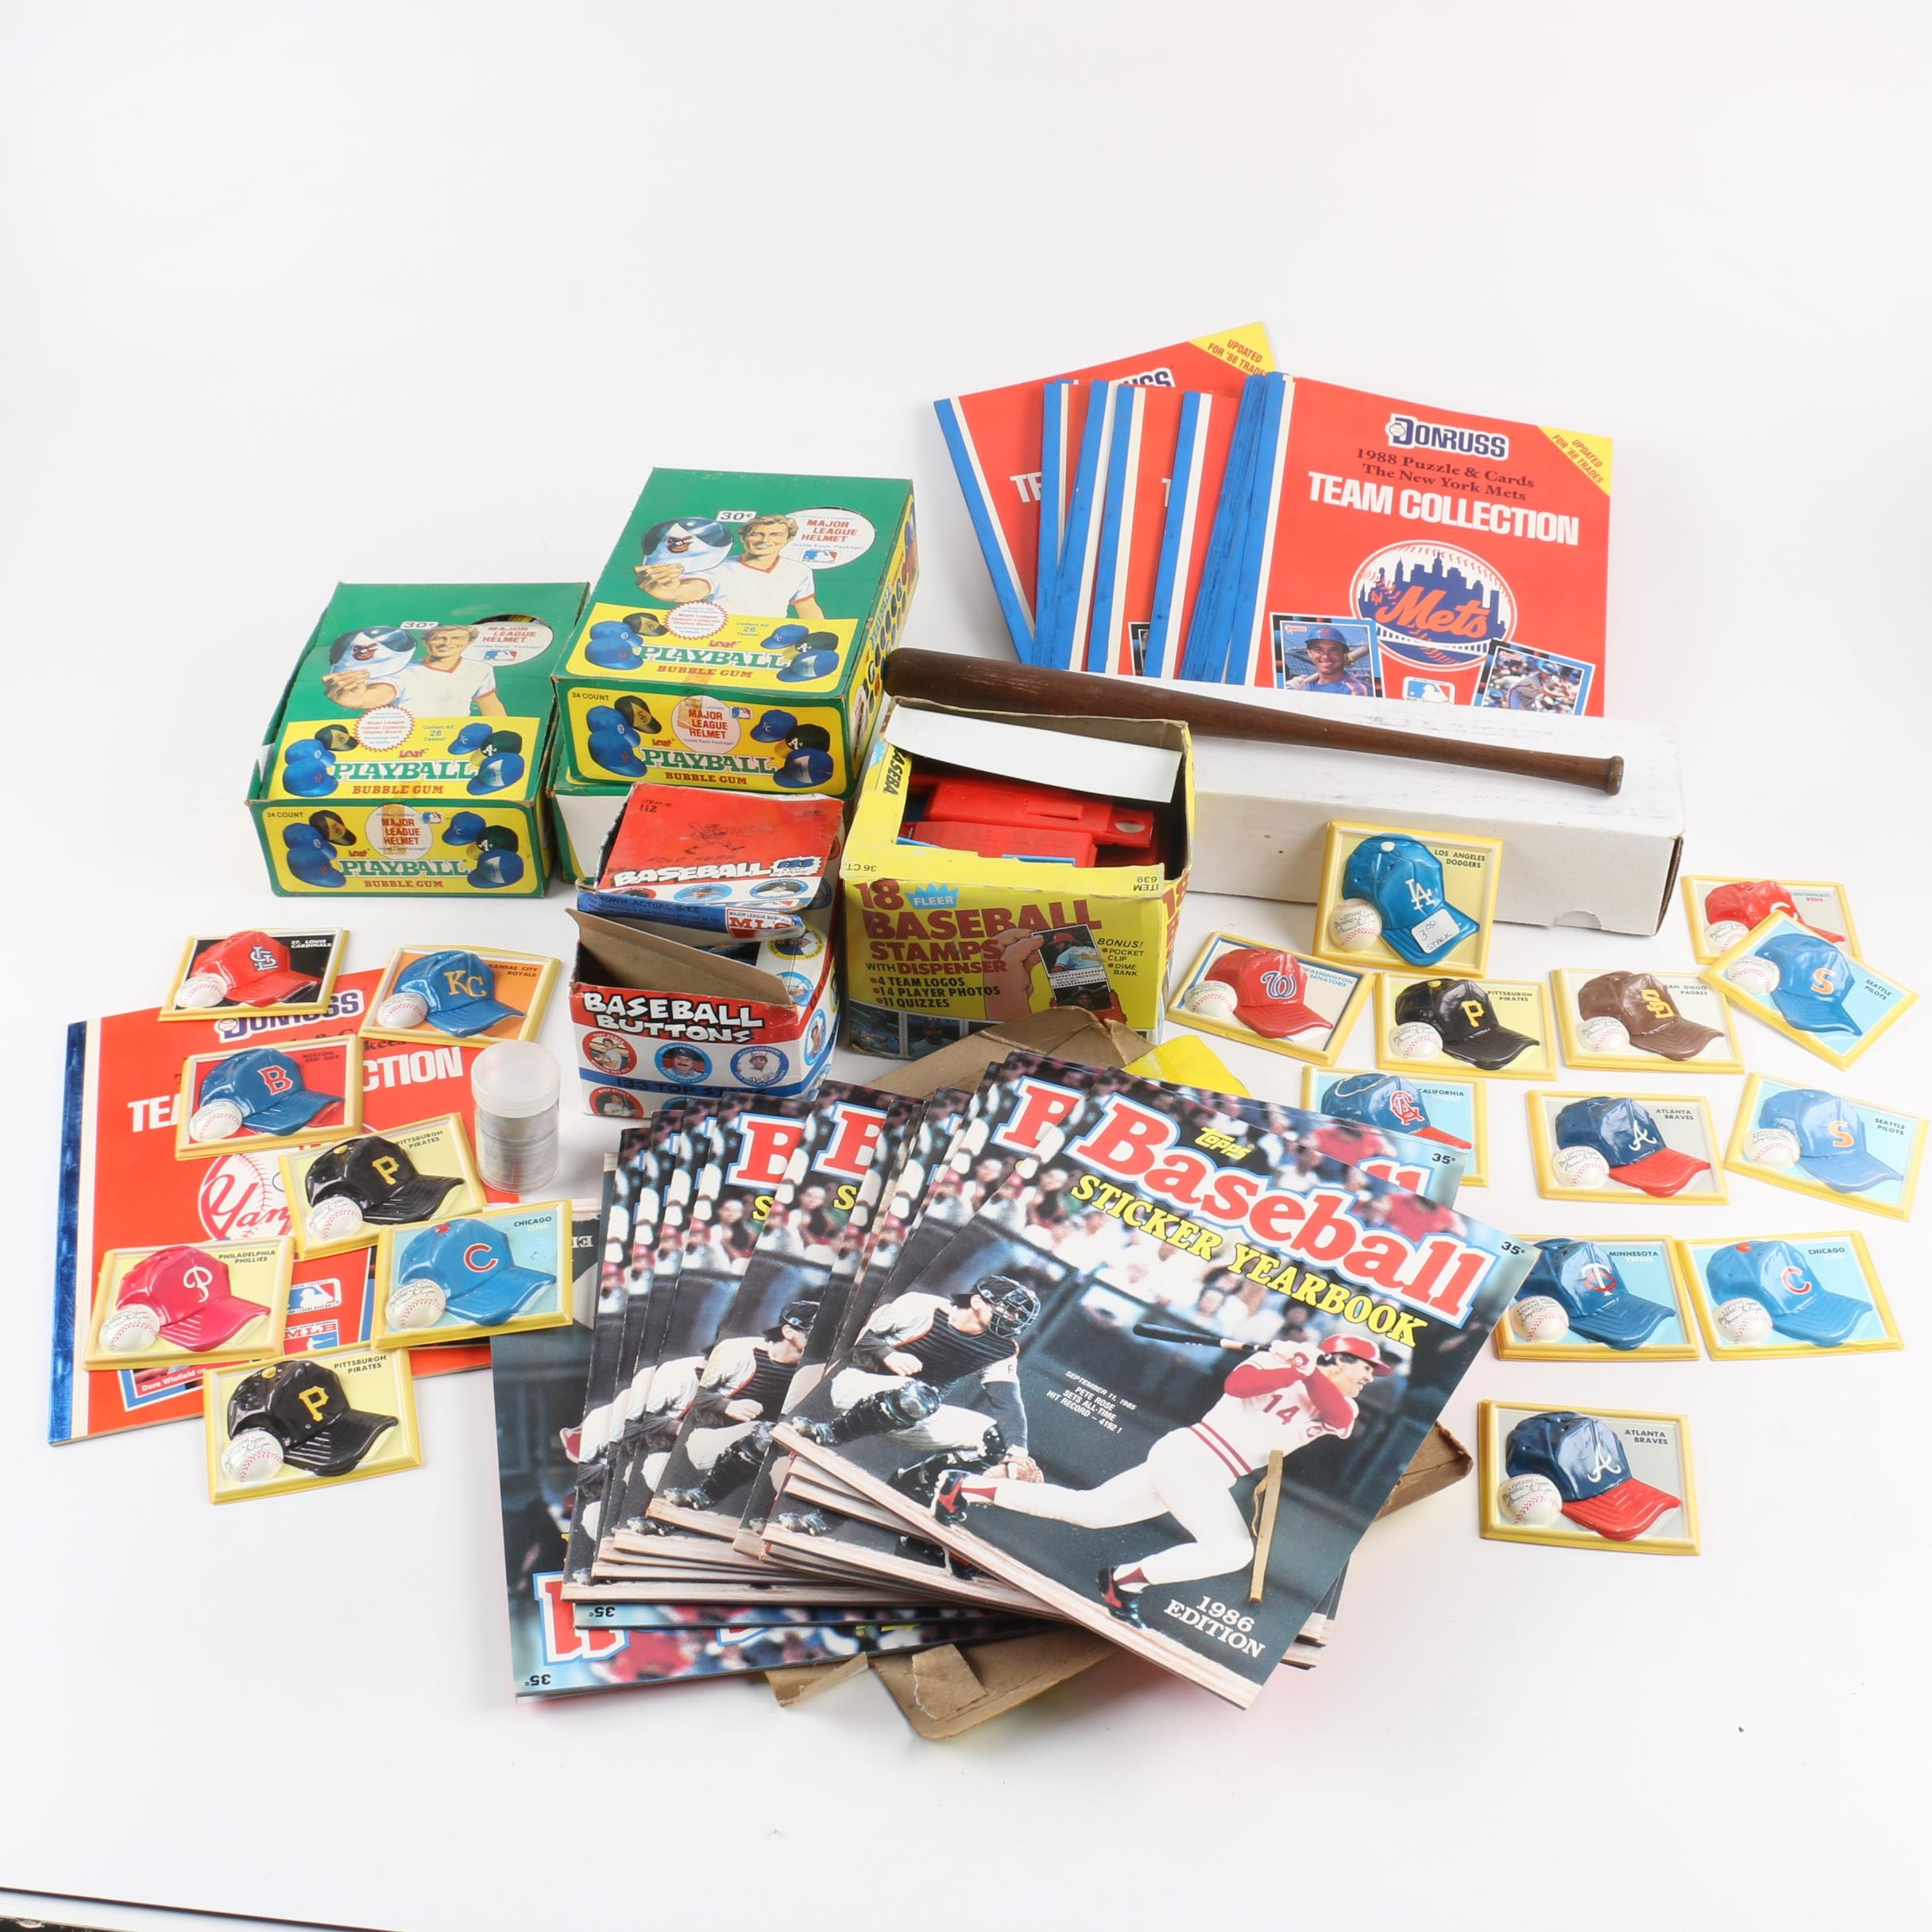 Baseball Memorabilia including Topps Sticker Yearbooks and Fleer Stamp Sets